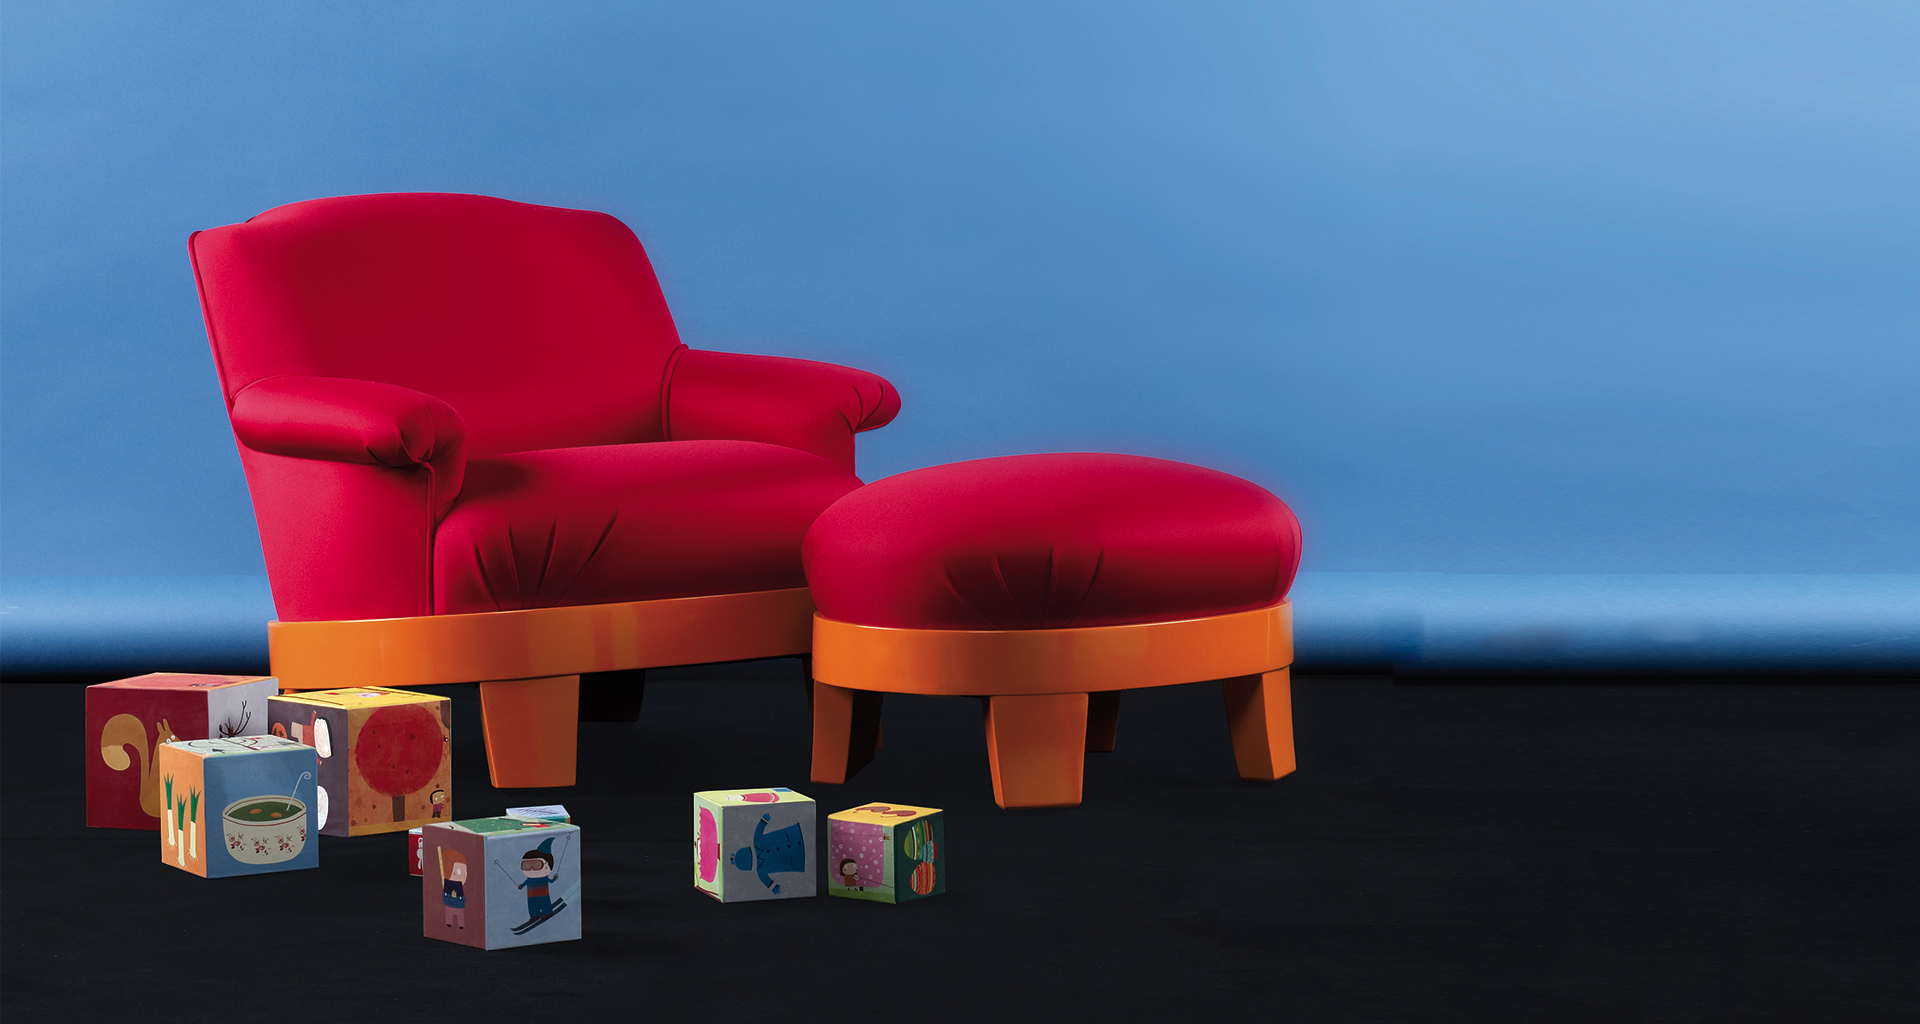 Miniature Gacy Kids armchair and pouf, that belongs to the Kids Collection which is a reinterpretation of some of the iconic pieces of Promemoria | Promemoria